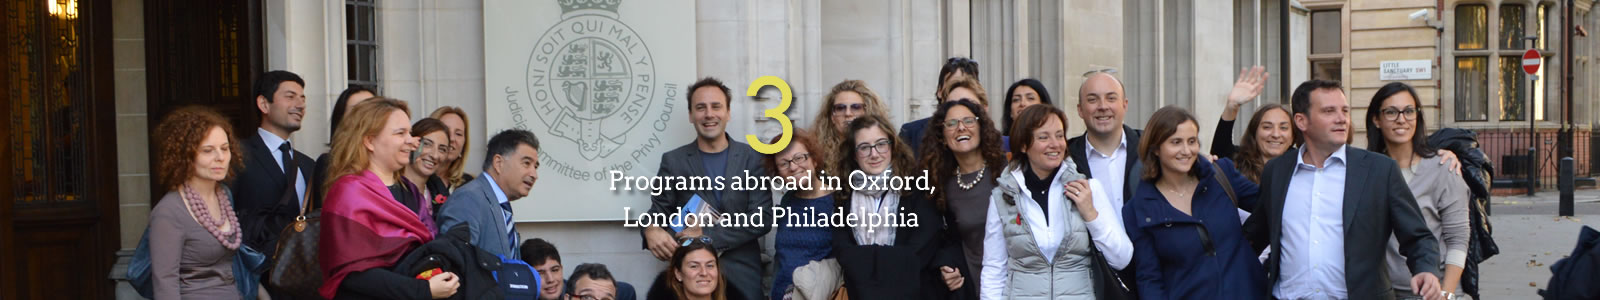 3 Programs abroad in Oxford, London and Philadelphia